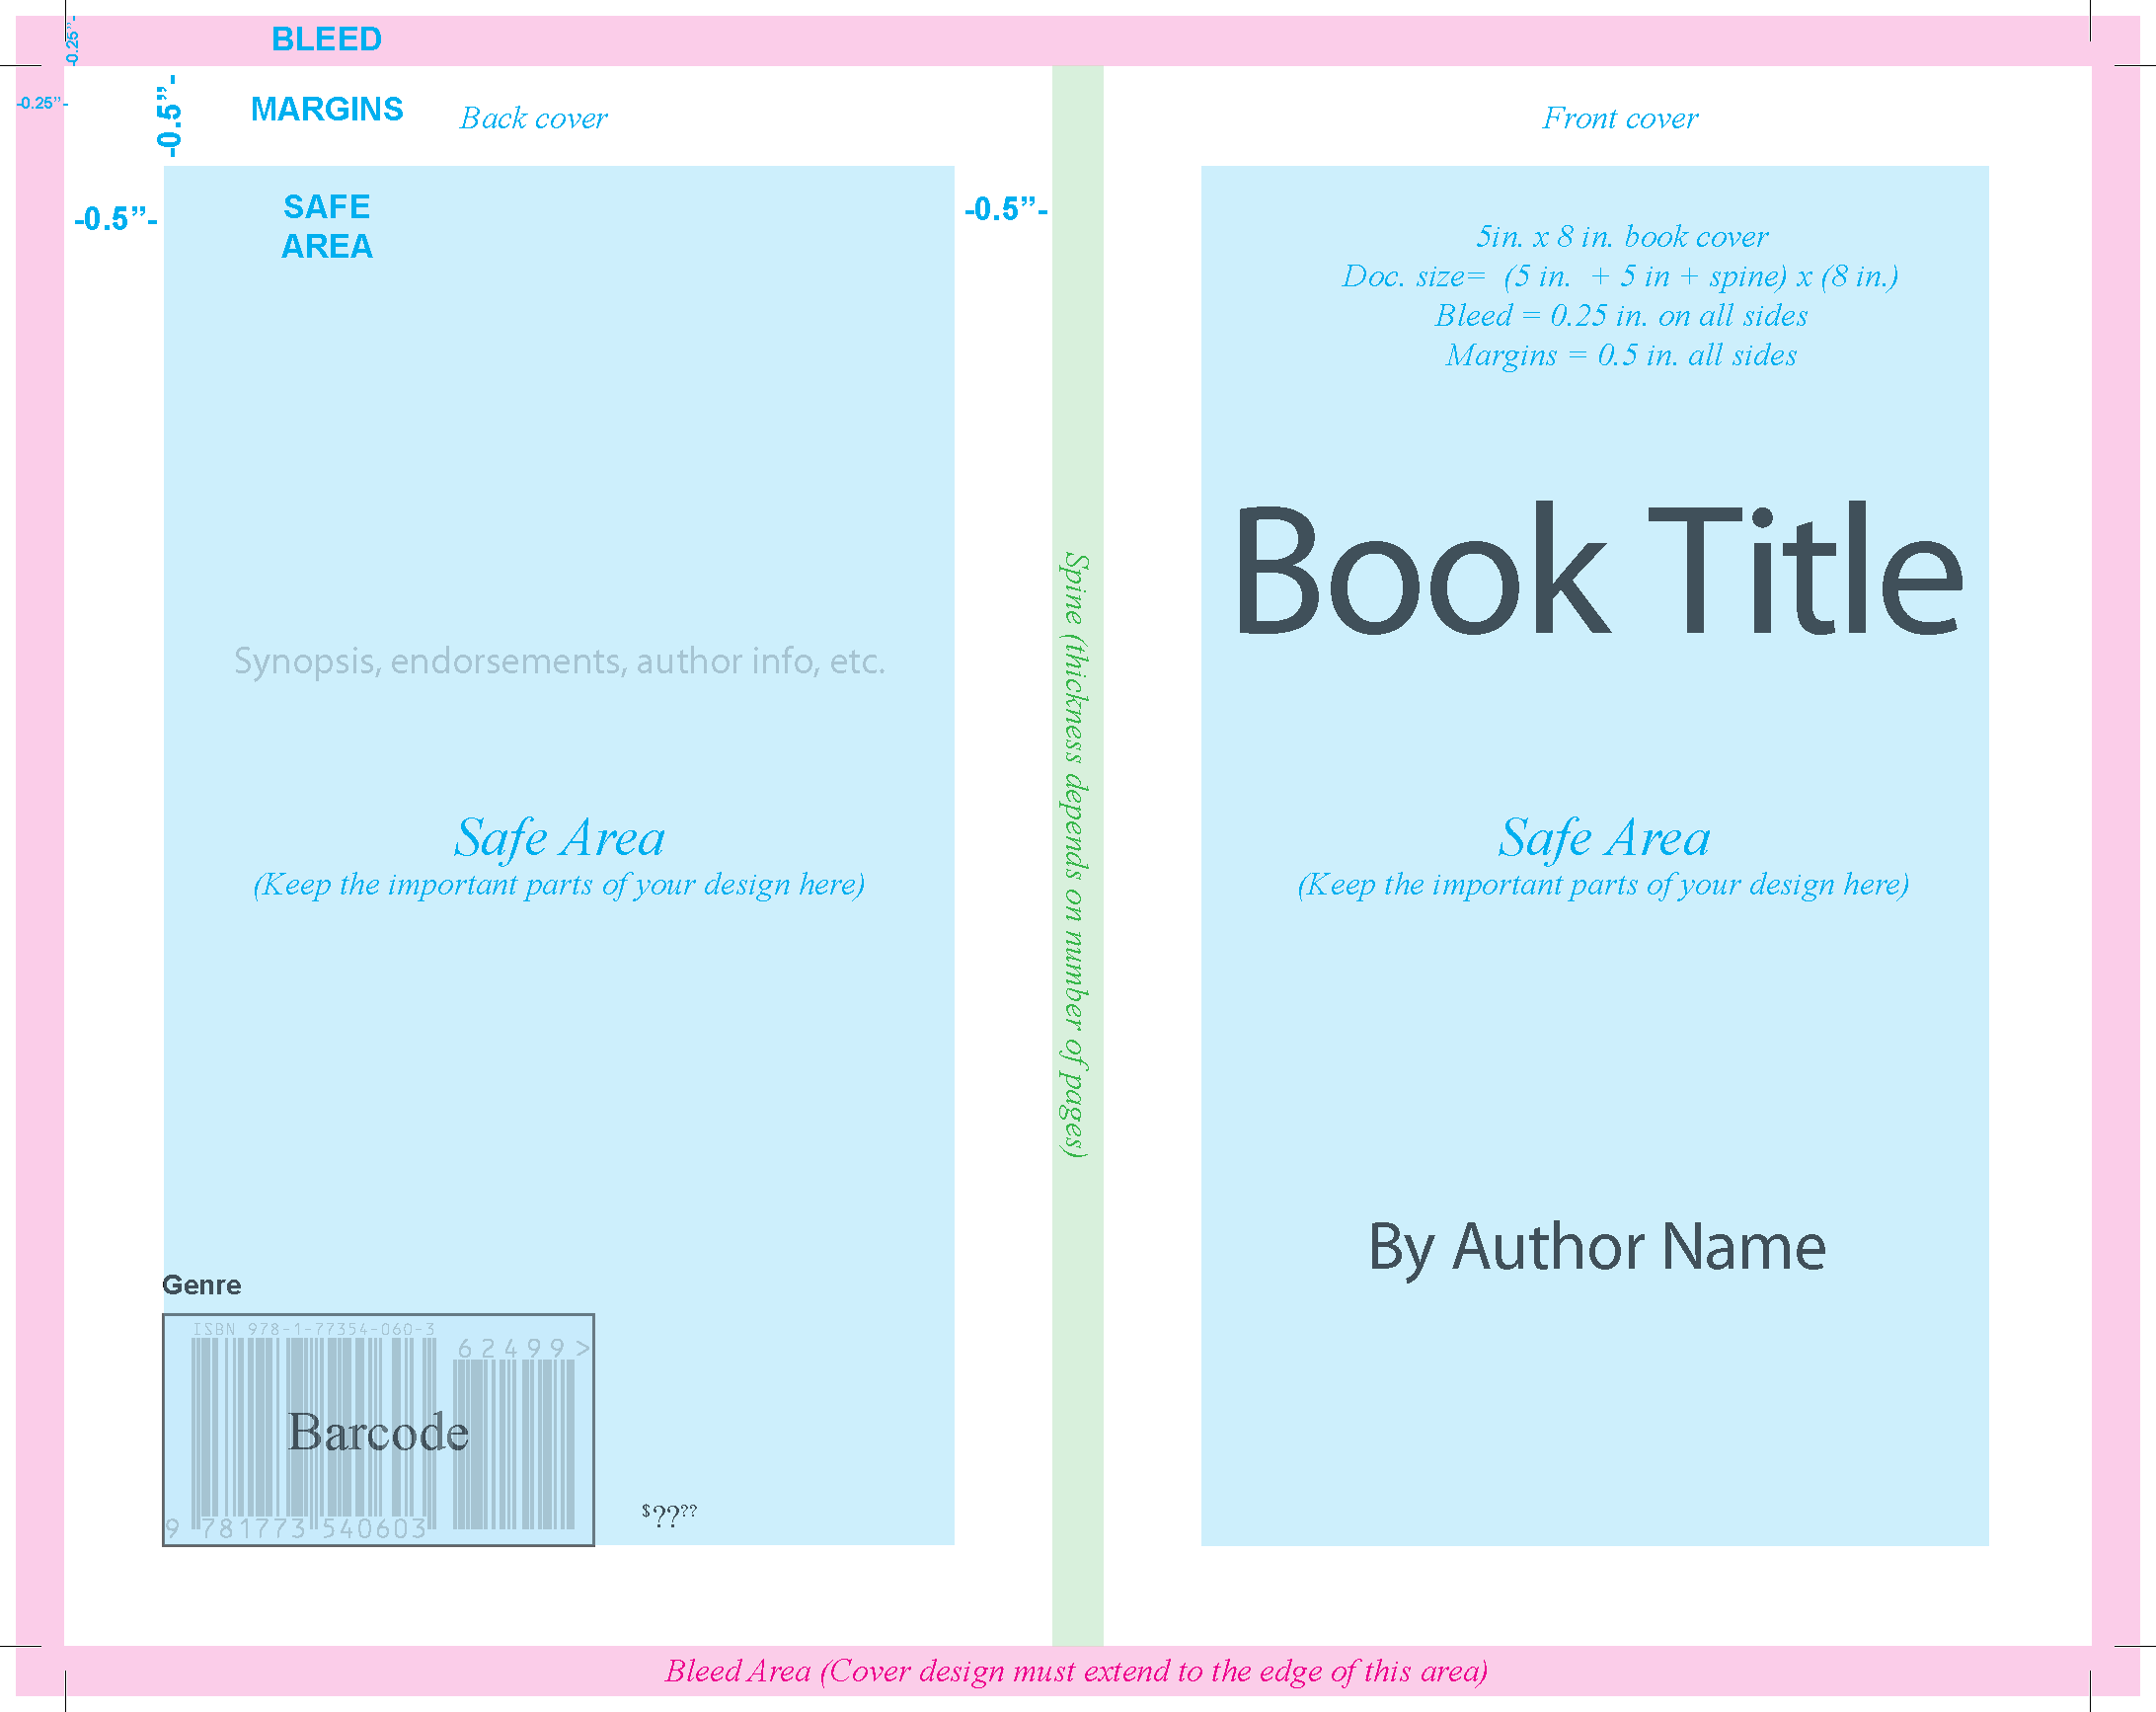 book cover template showing margins and bleed allowance.